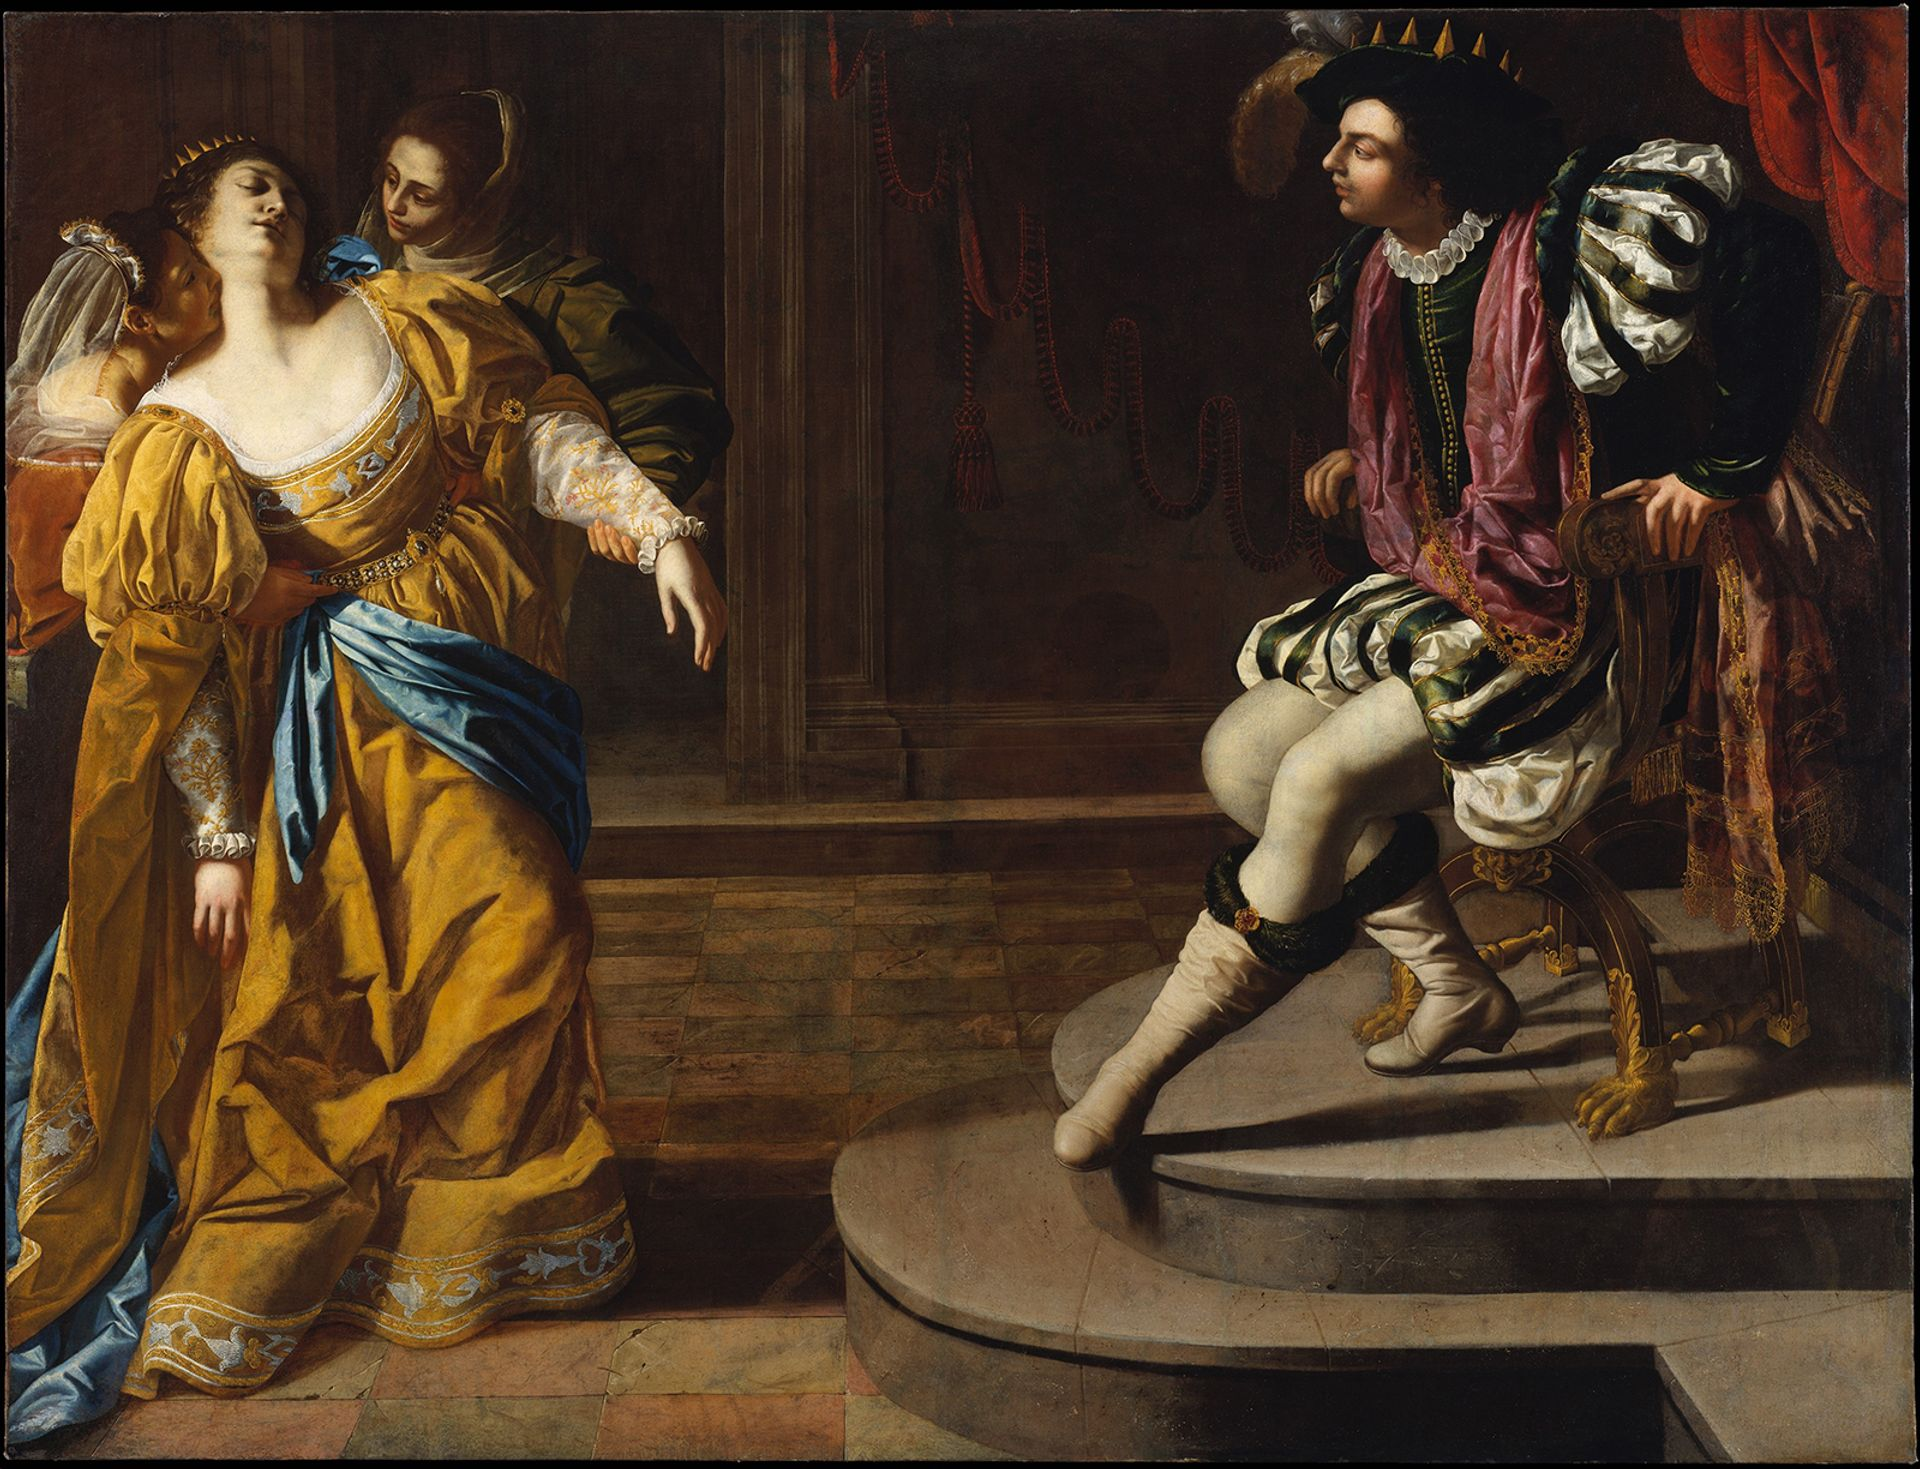 The Met's new admissions policy is not for the faint of heart (Above, Esther before Ahasuerus, by Artemisia Gentileschi) Courtesy of the Metropolitan Museum of Art, New York